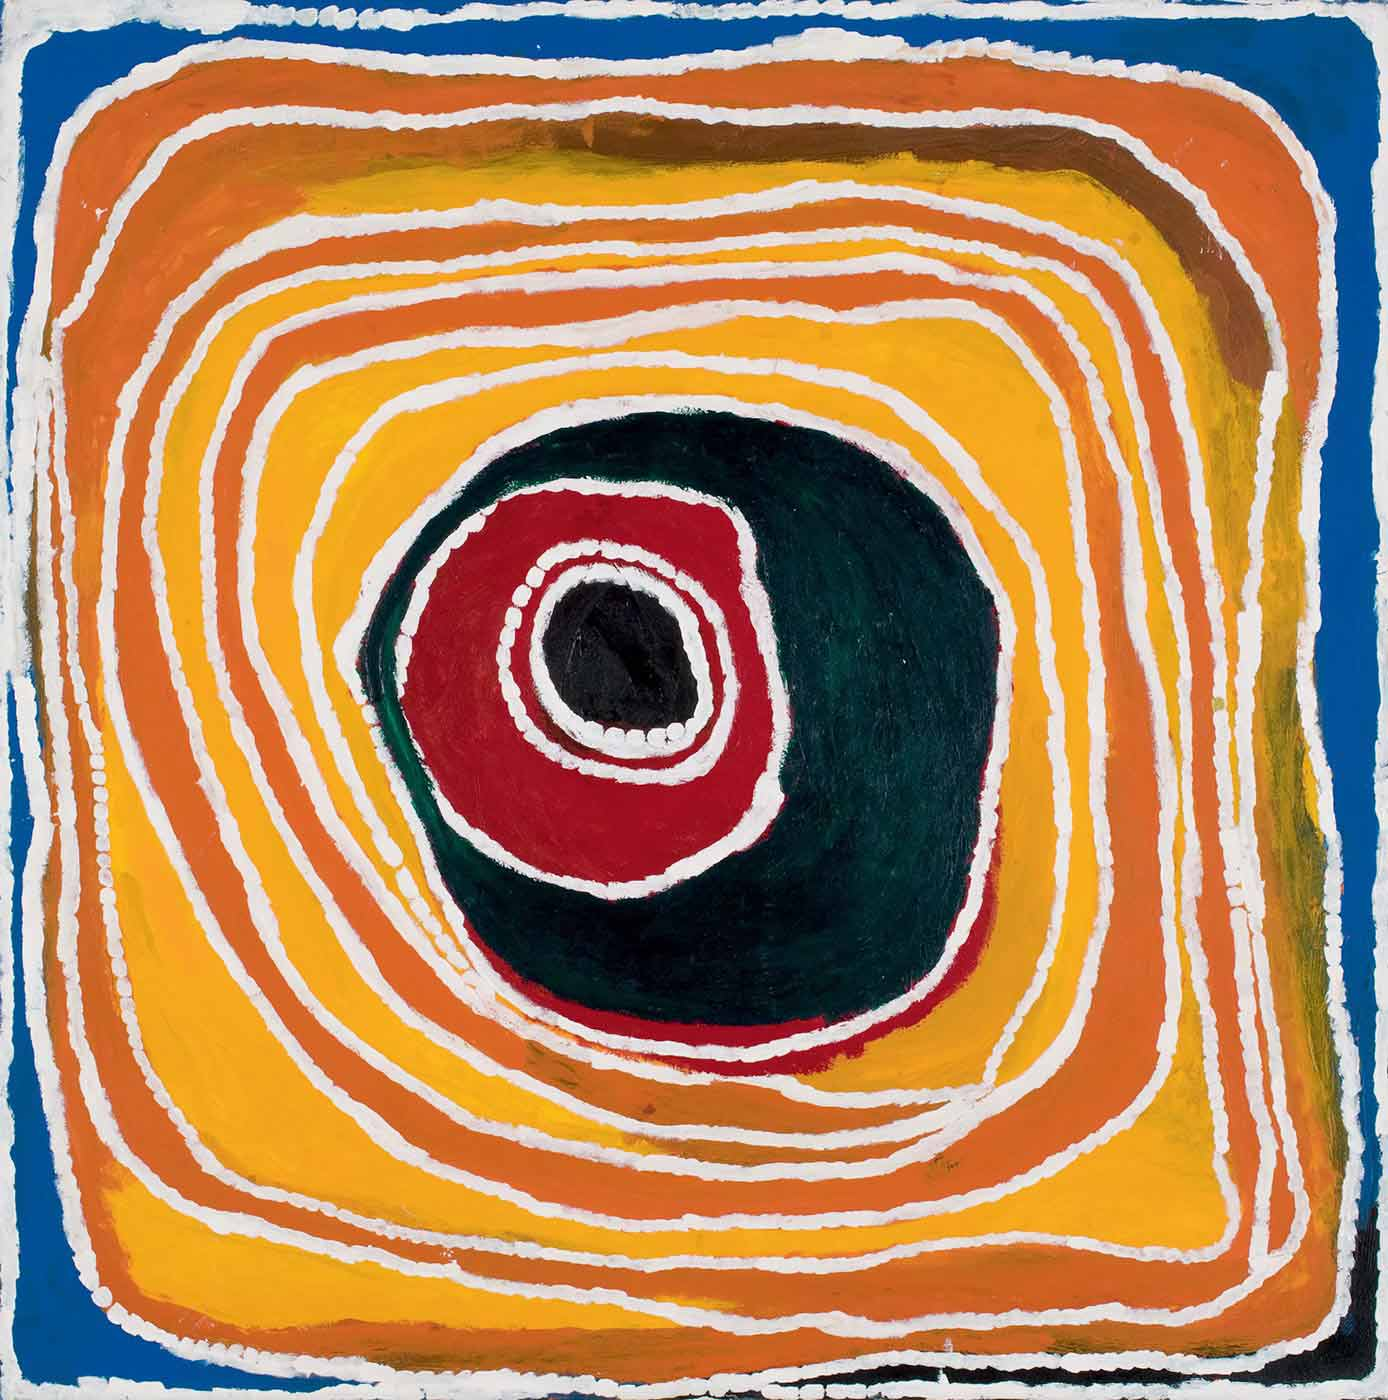 A square painting on canvas in mainly primary colours showing an uneven concentric circle which becomes a round edged square in the outer rings. There are thin white lines between each ring, and colours start with black in the centre then, red, dark green, yellow orange and blue at the edge. - click to view larger image